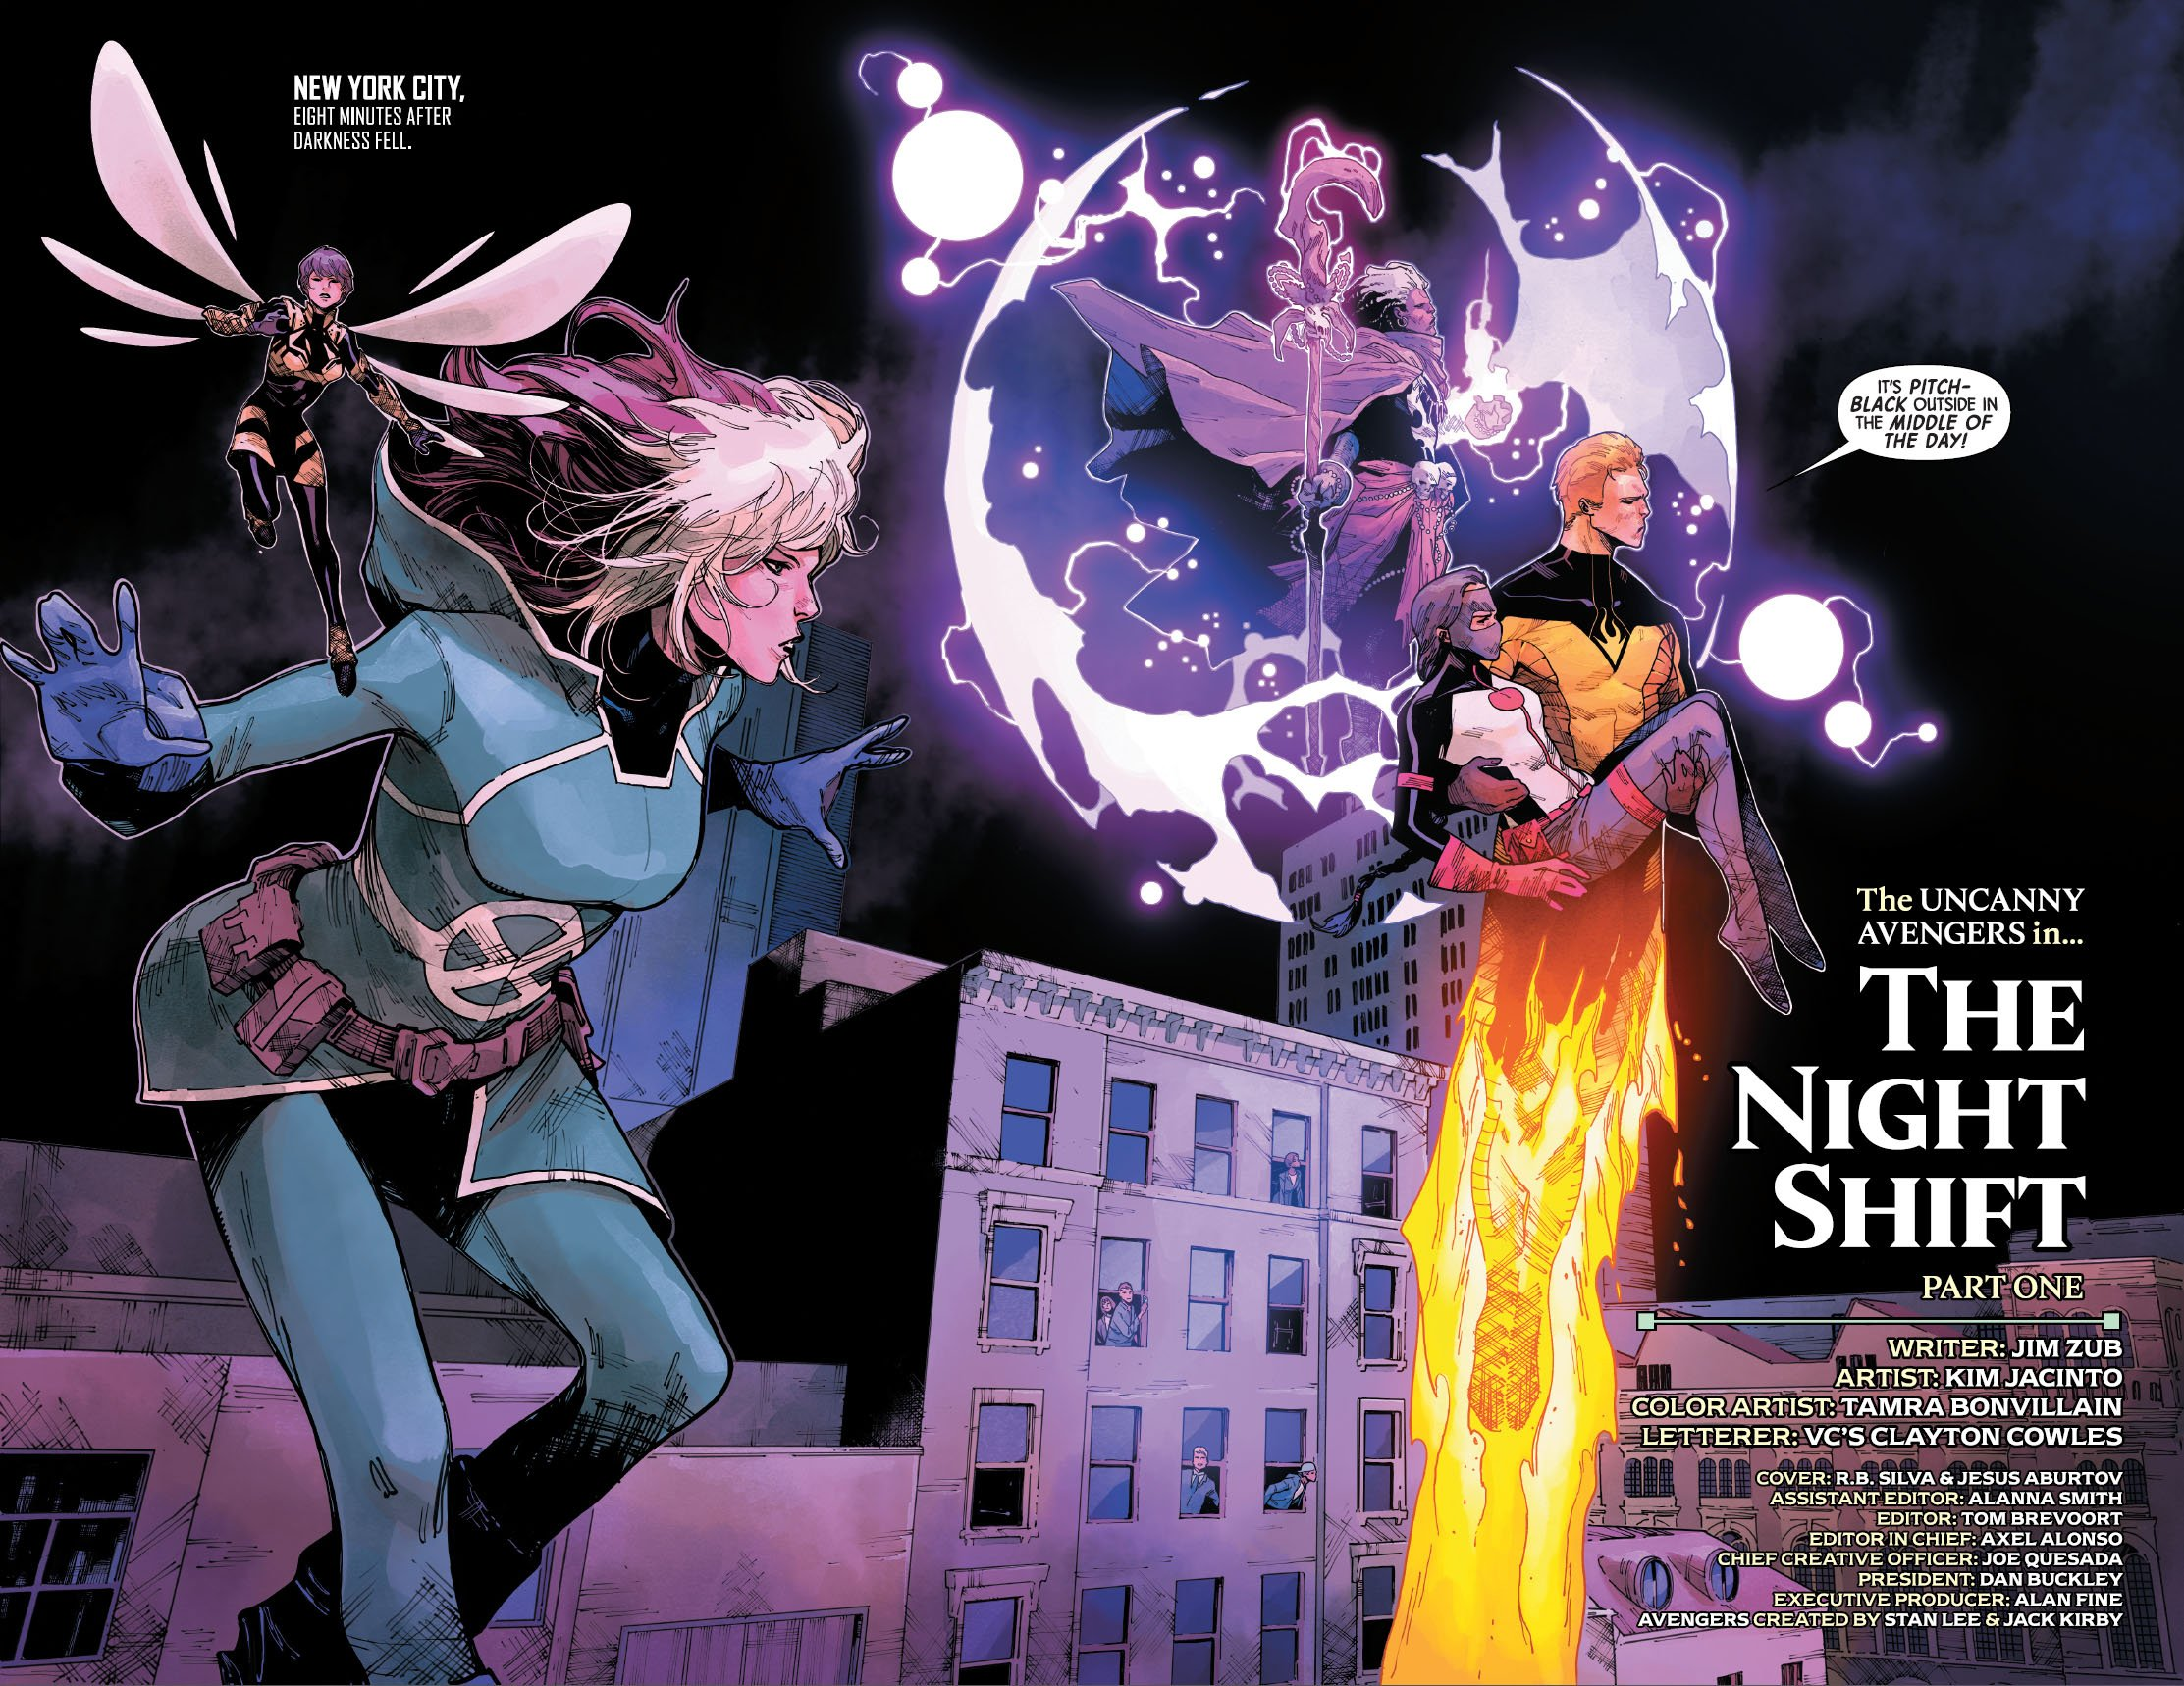 Uncanny Avengers 24 pages 2 and 3